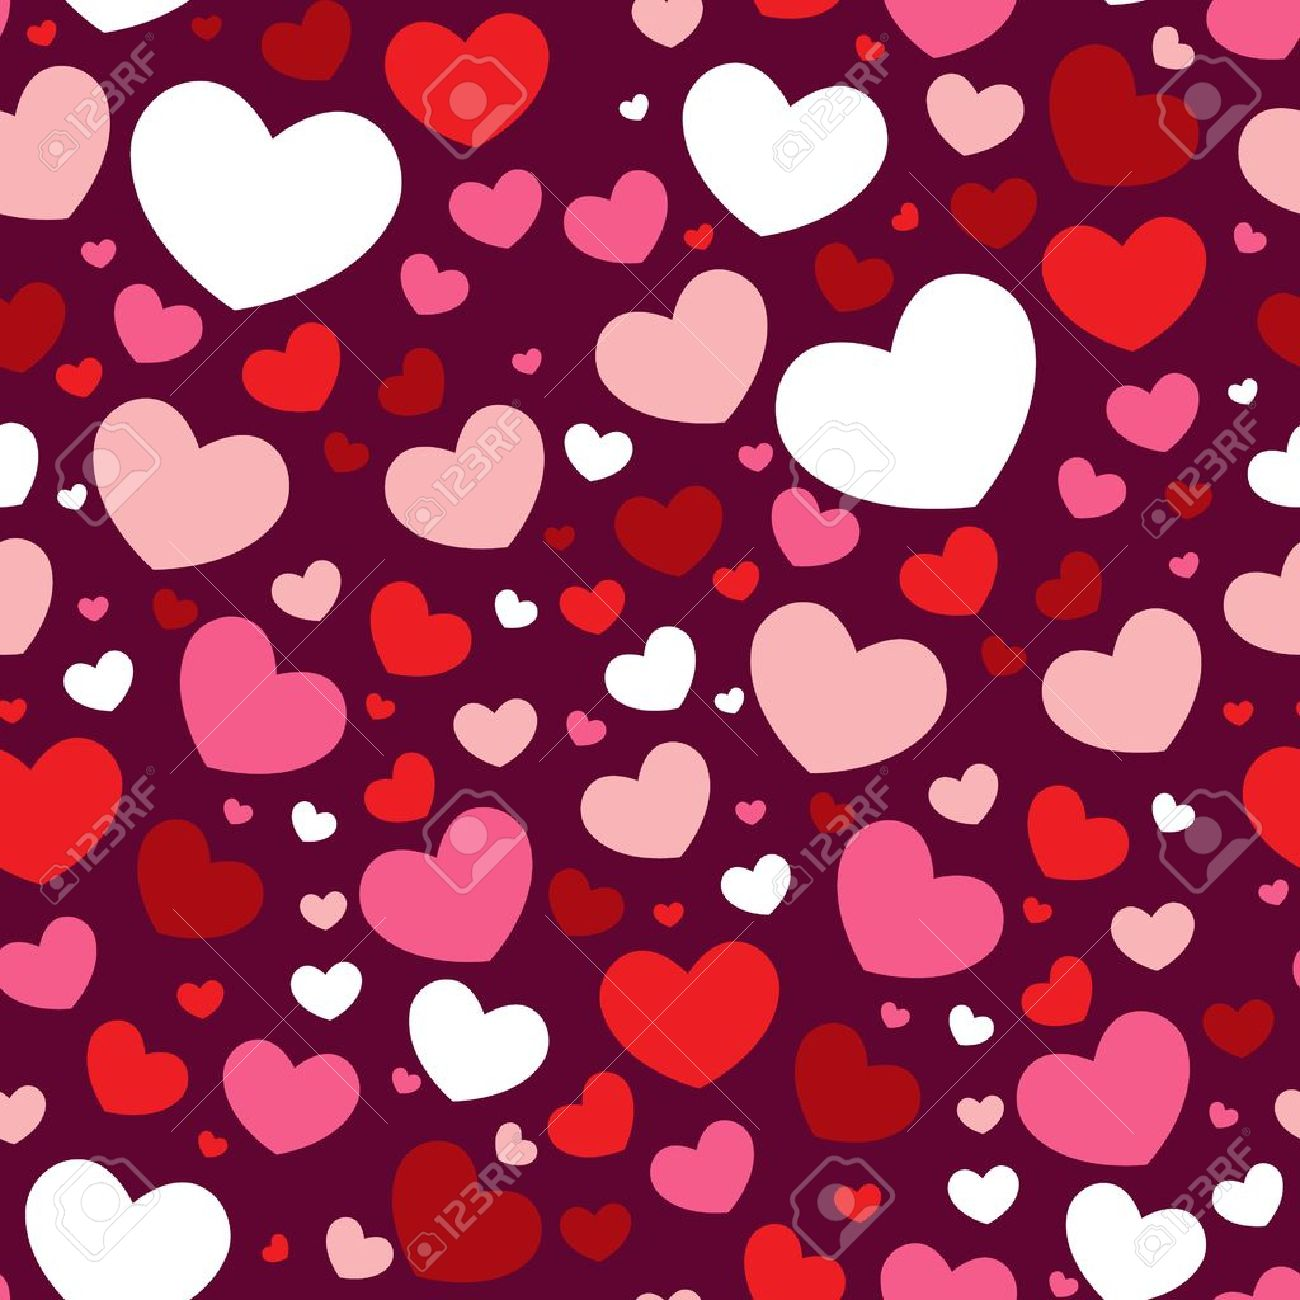 cute valentine love seamless pattern with colorful hearts royalty